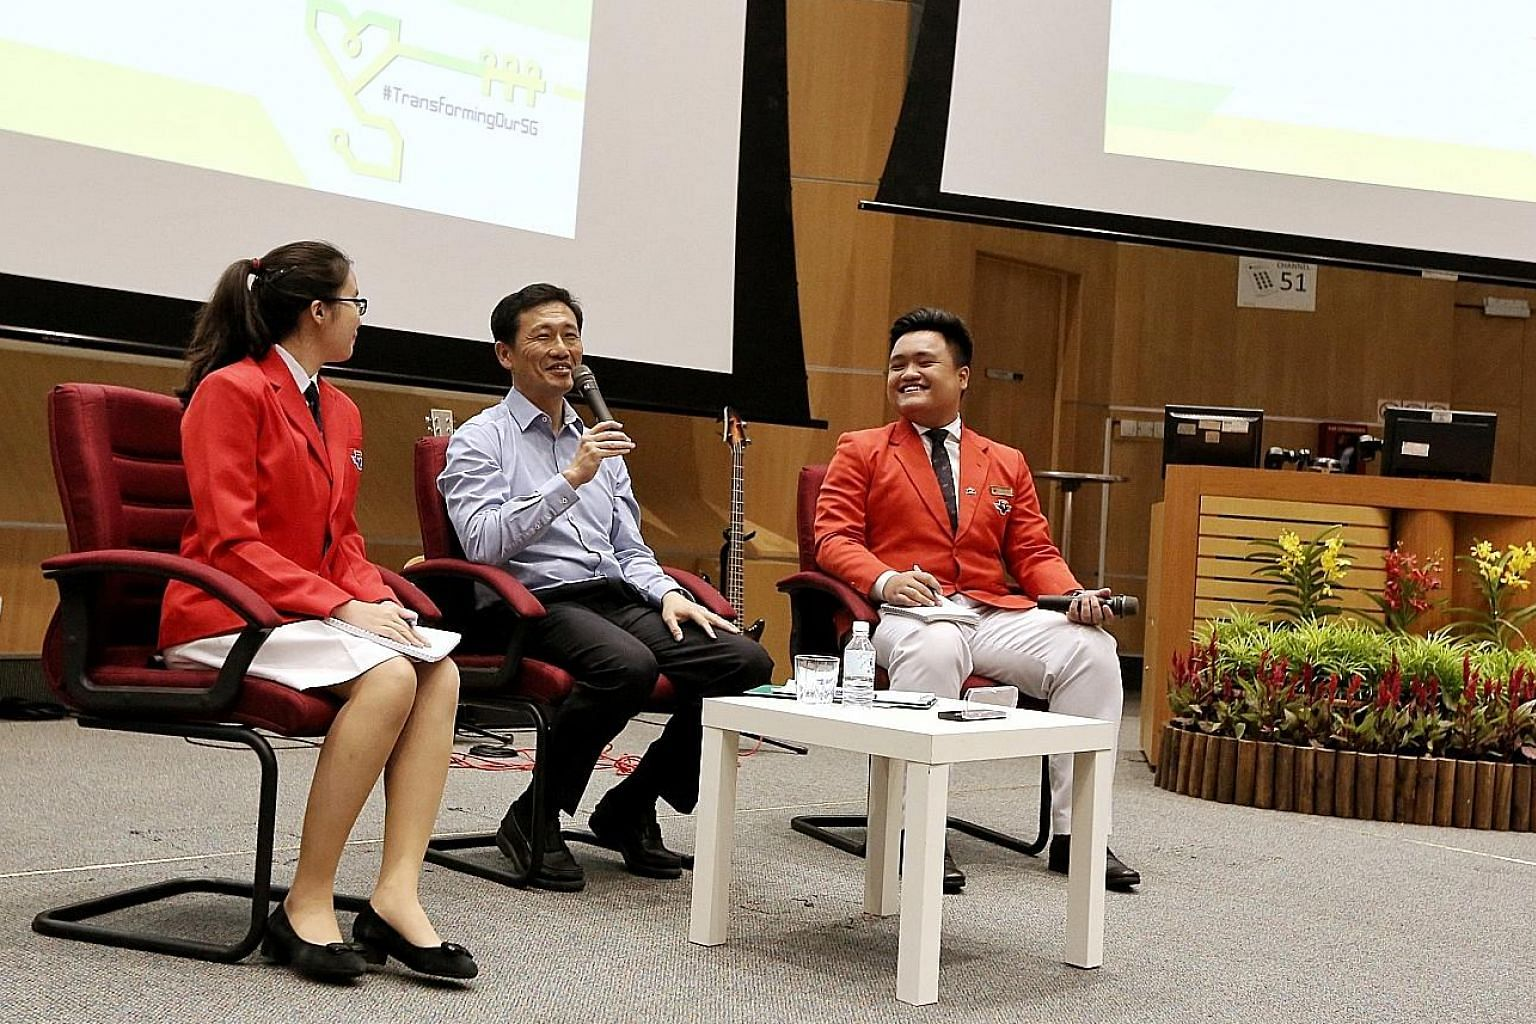 Education Minister Ong Ye Kung at the opening ceremony of the pre-university seminar at Nanyang Technological University.